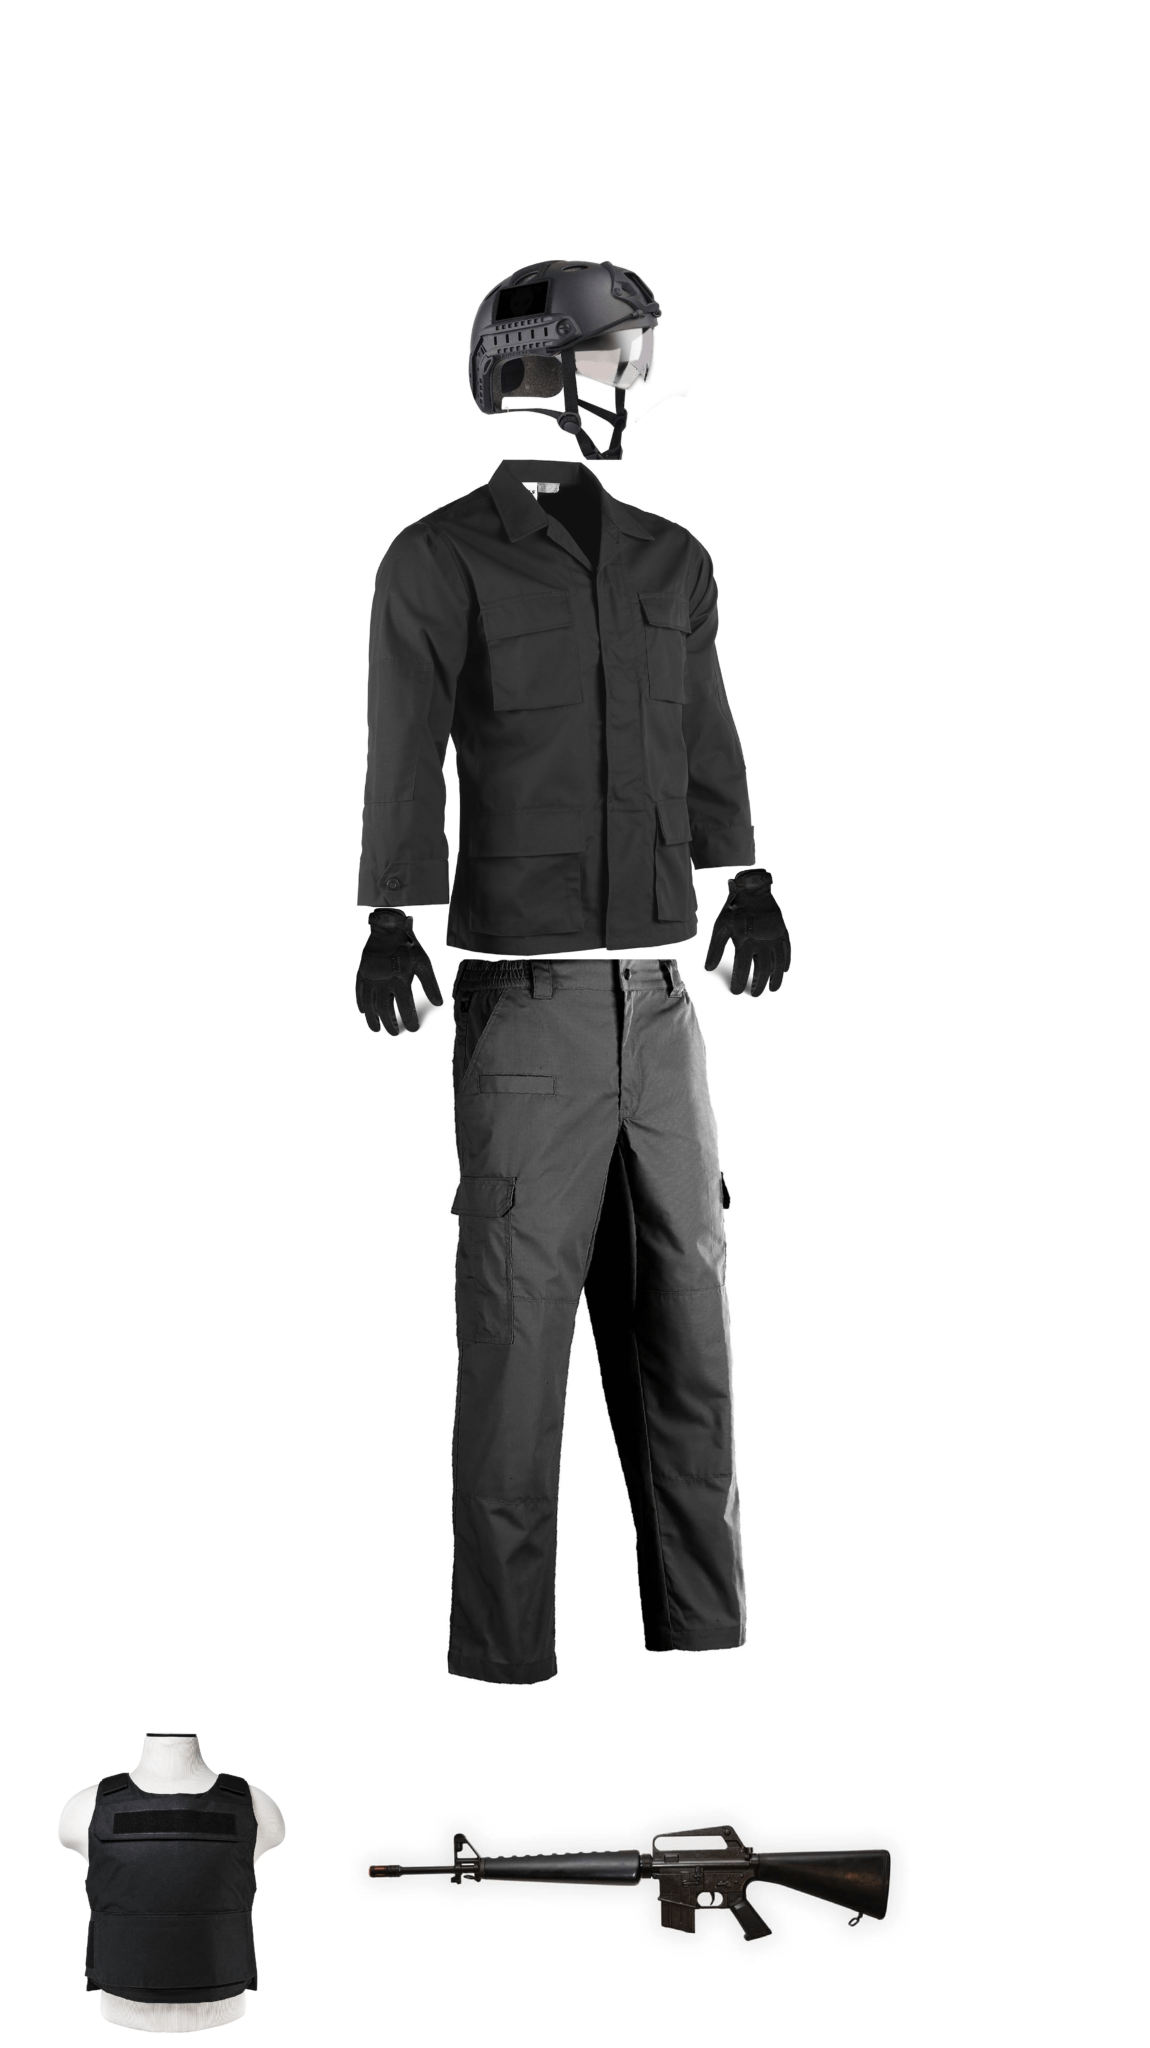 SWAT Costume Rental In Los Angeles